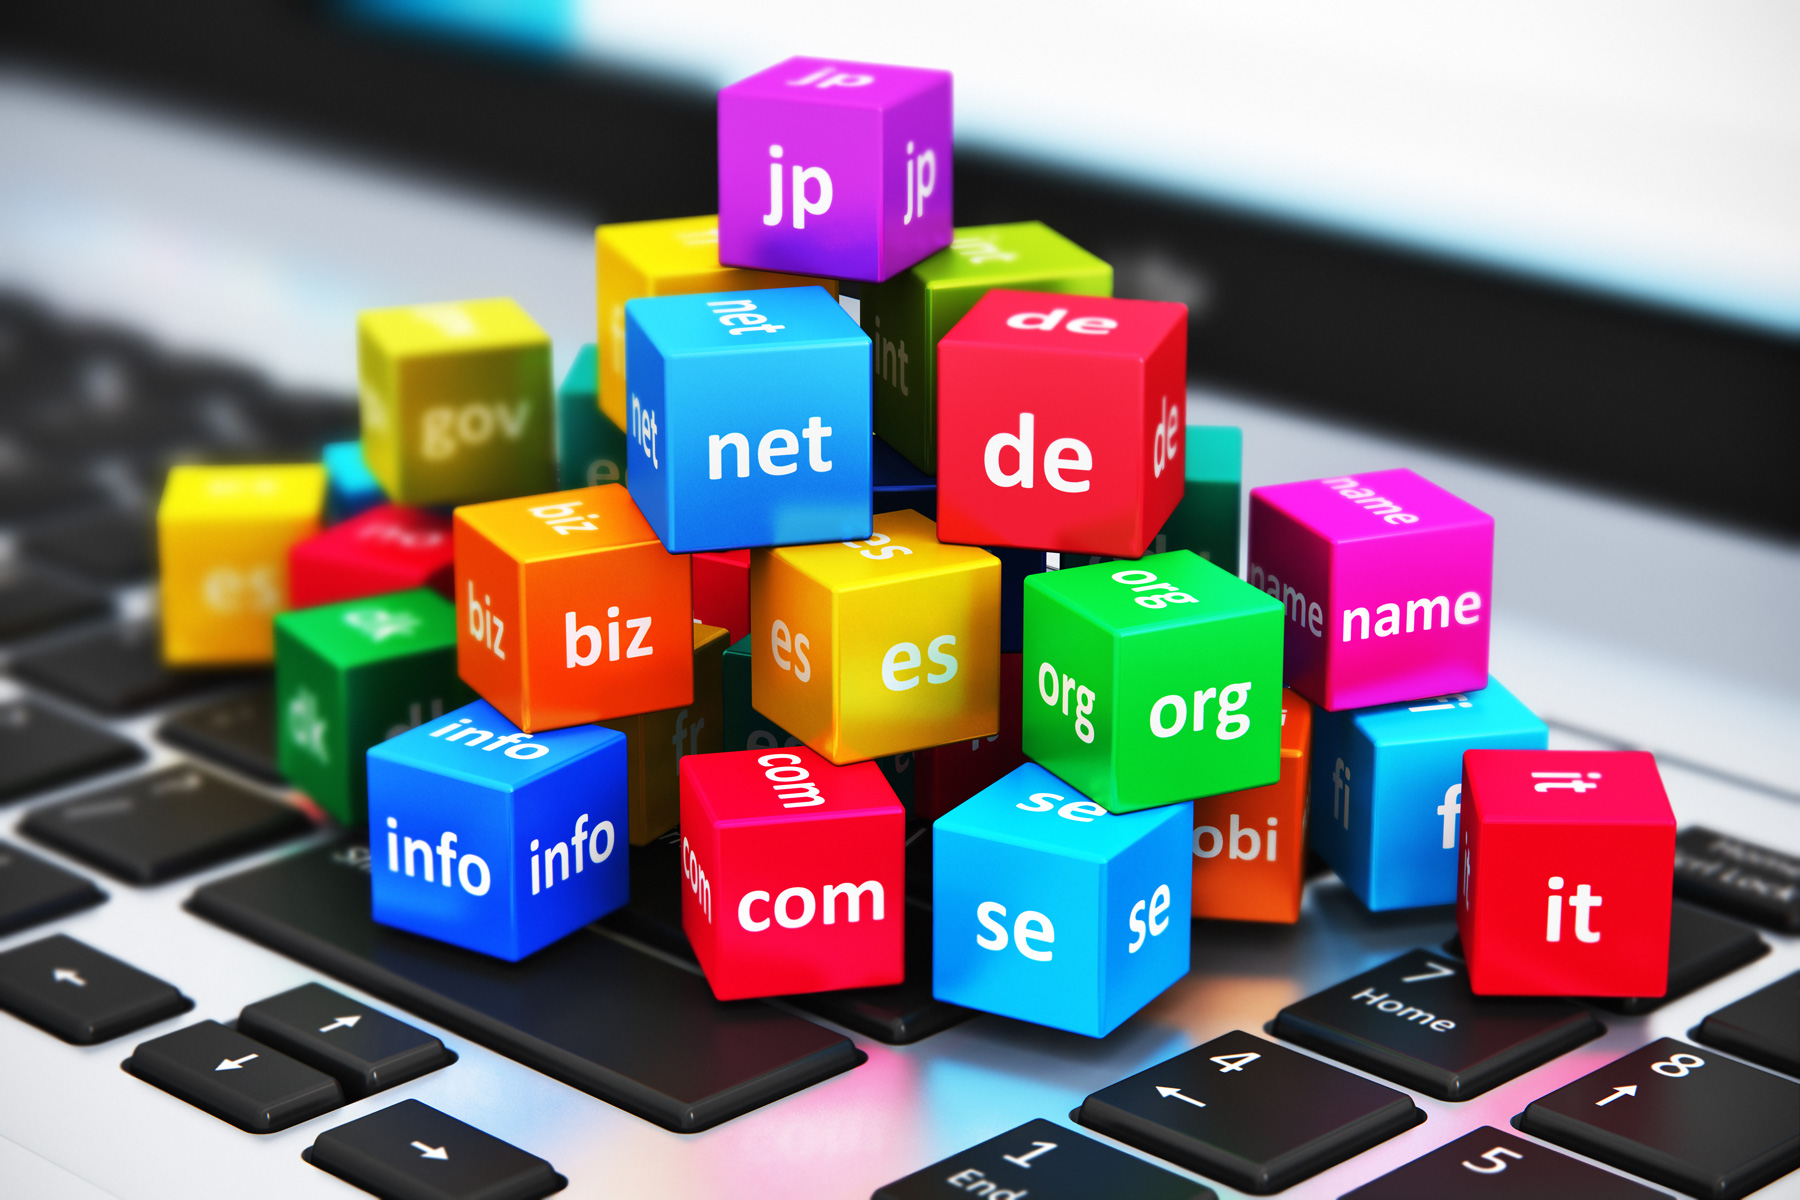 Picking the right domain name for your company